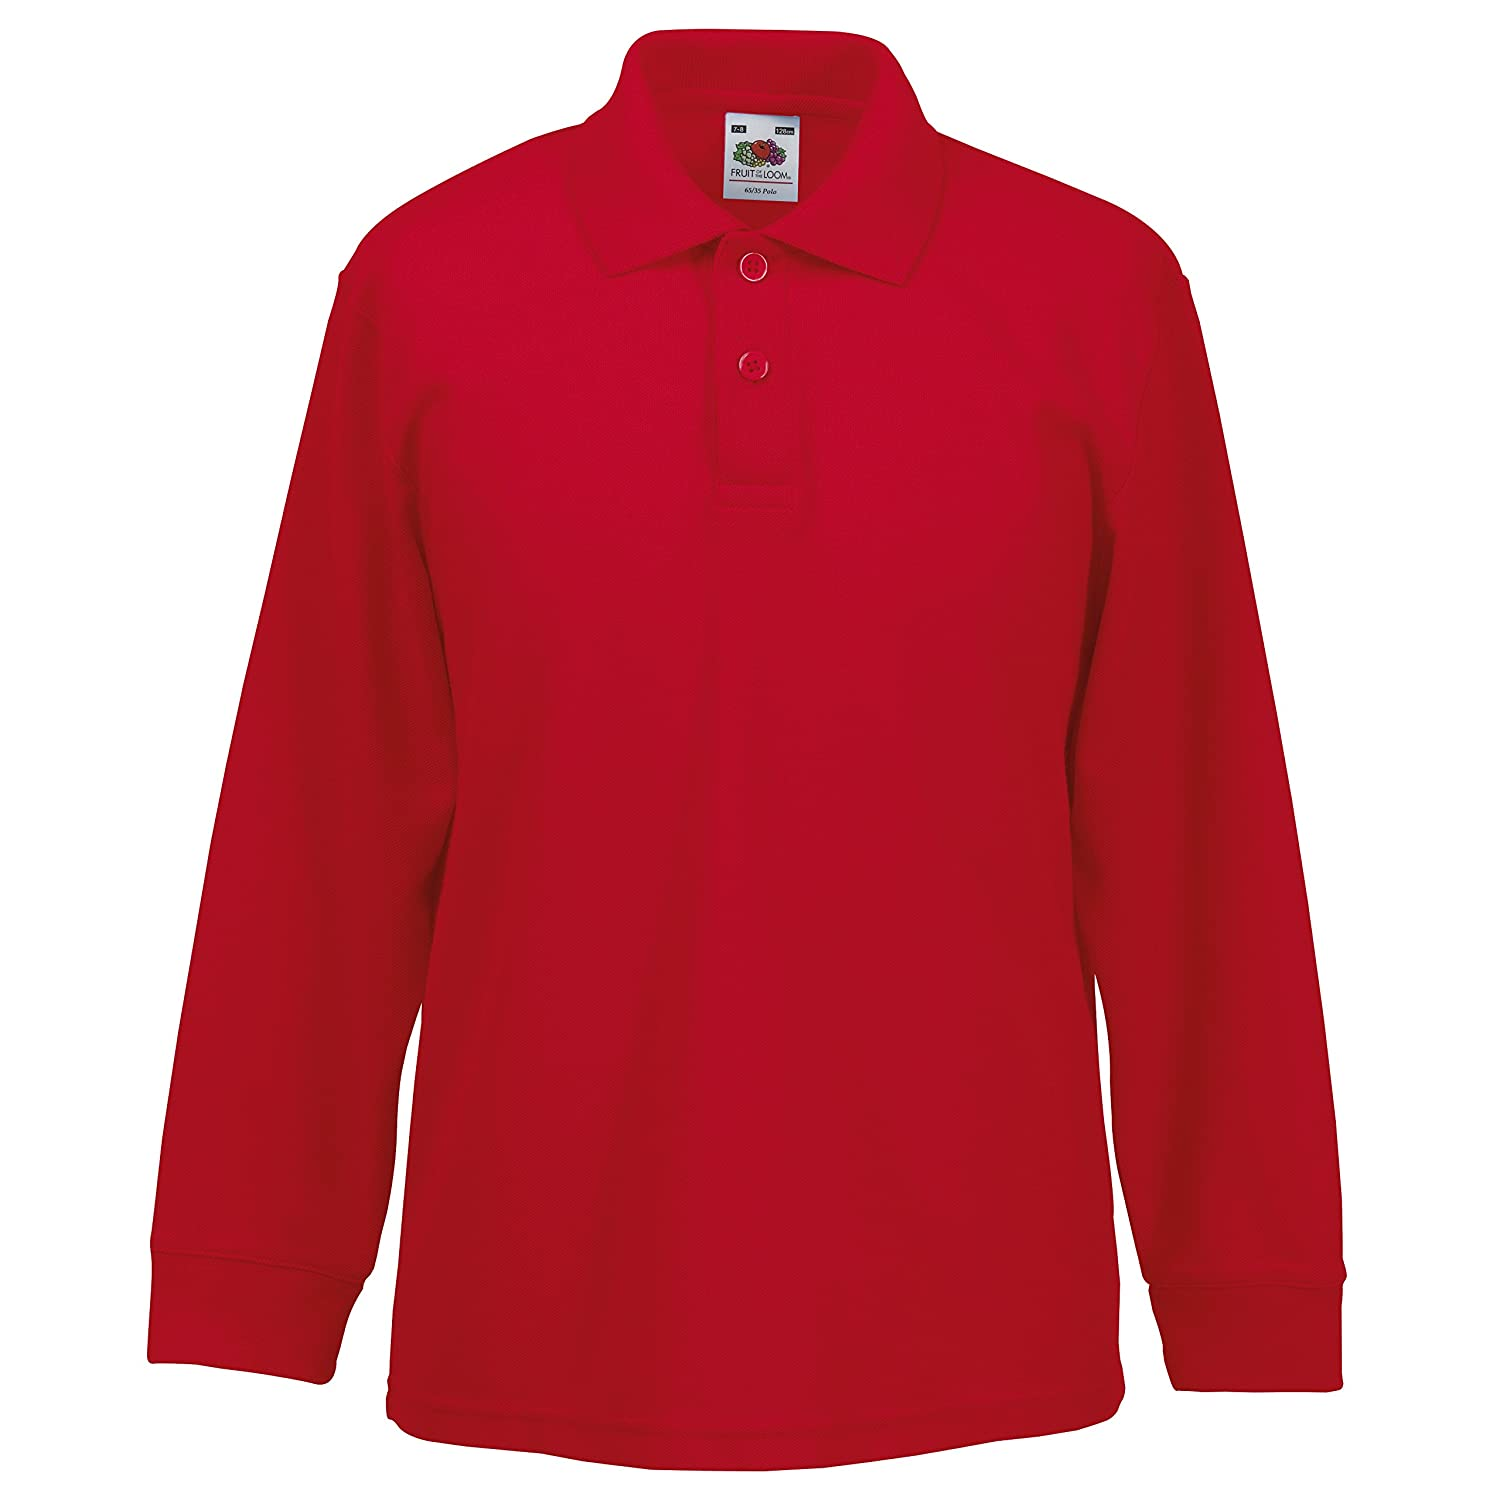 Fruit of the Loom Kids Unisex Long Sleeve Pique Polo